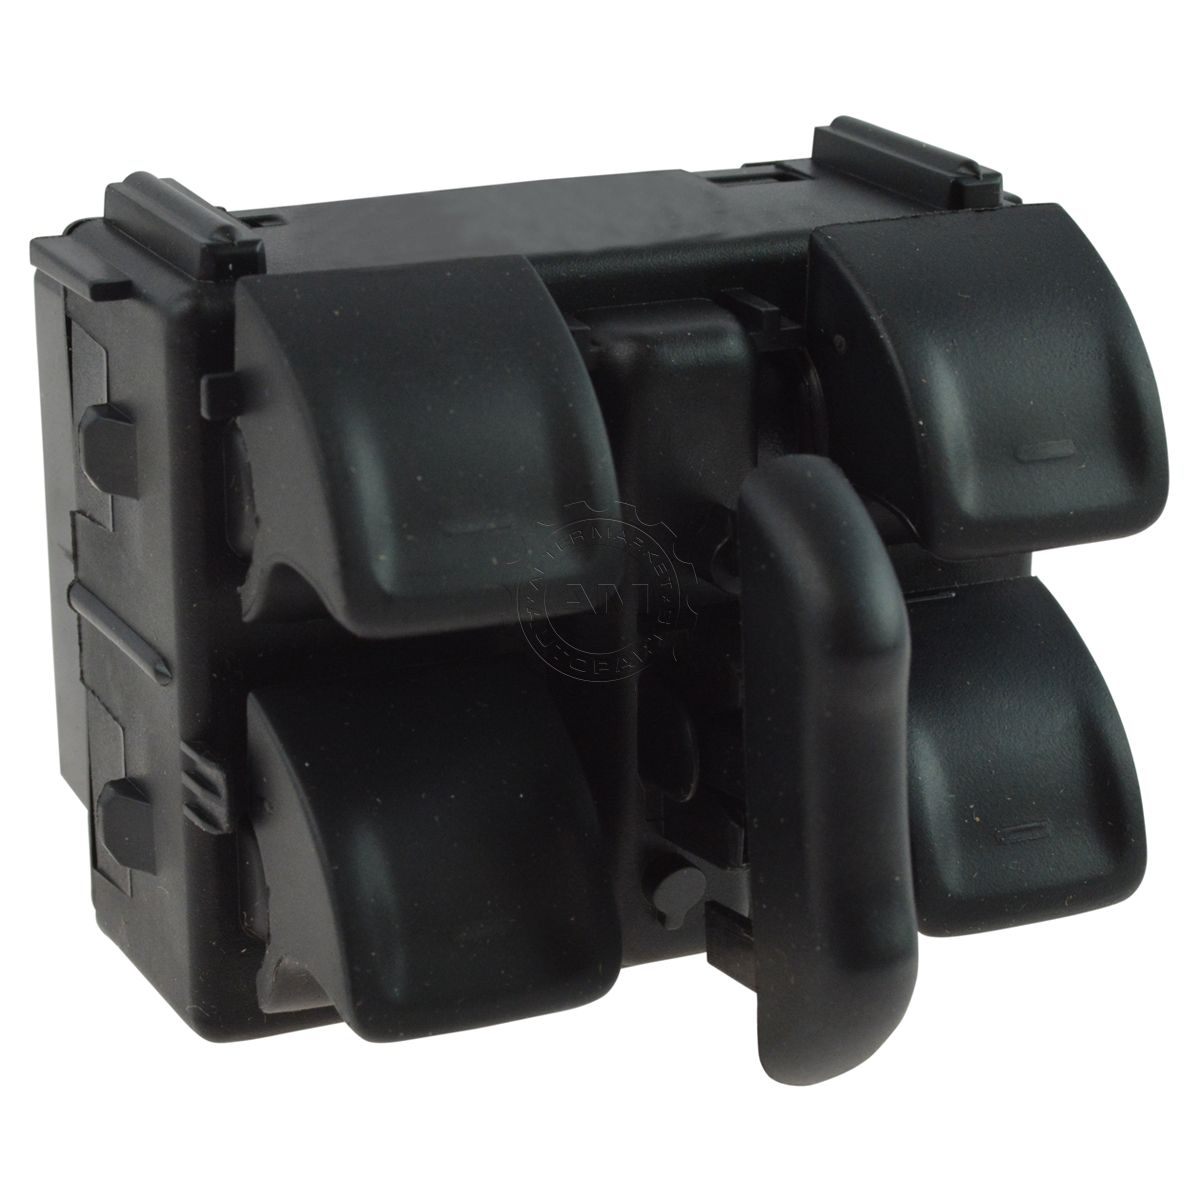 hight resolution of oem master power window switch center dash mounted for jeep wrangler 4 door new